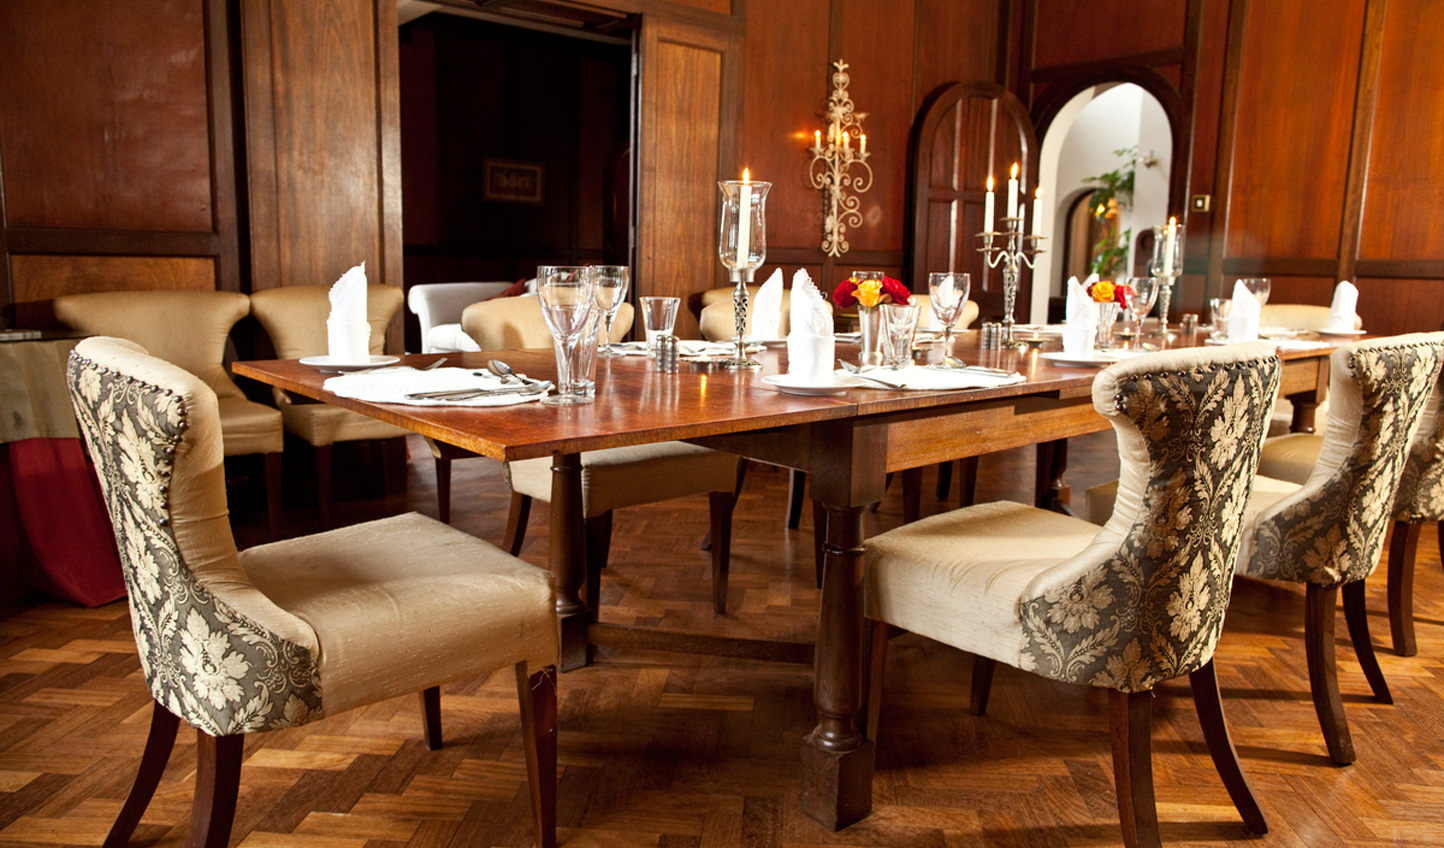 Delicious food is served in the opulent dining room